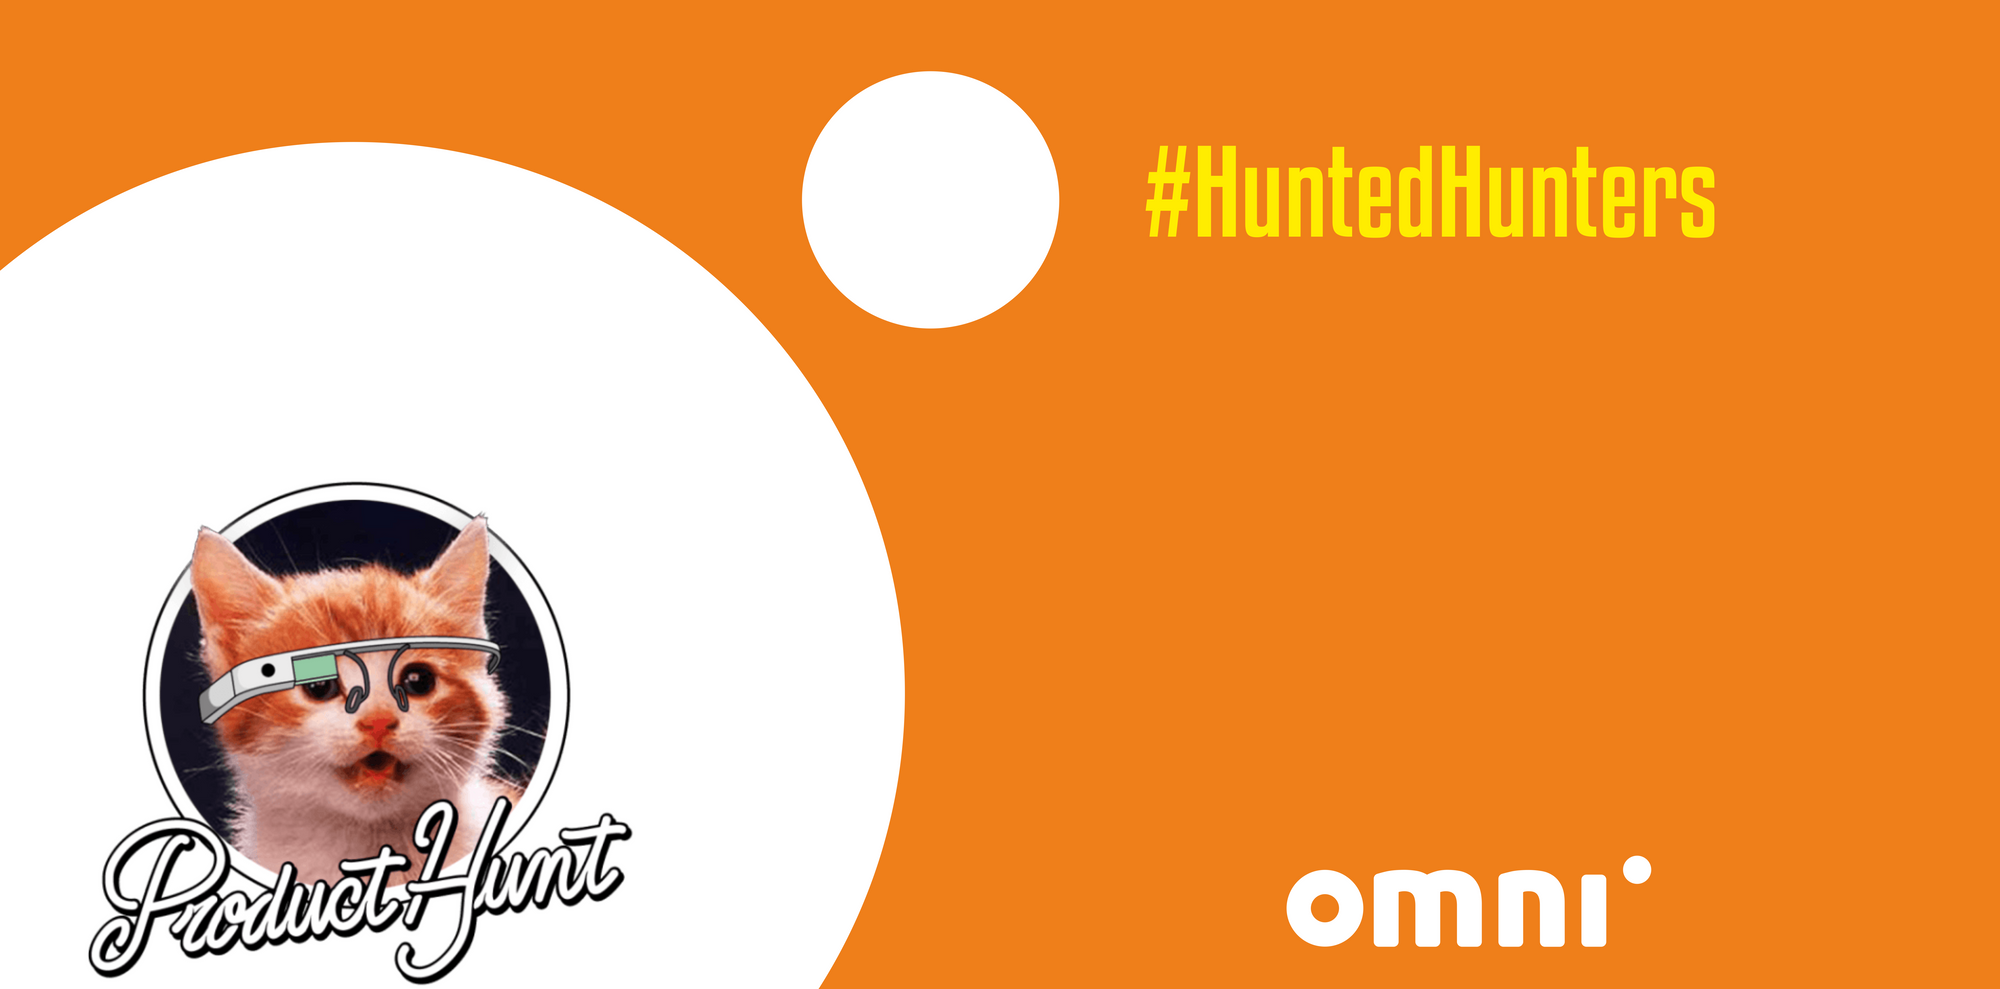 #HuntedHunters: A Product Hunting Saga